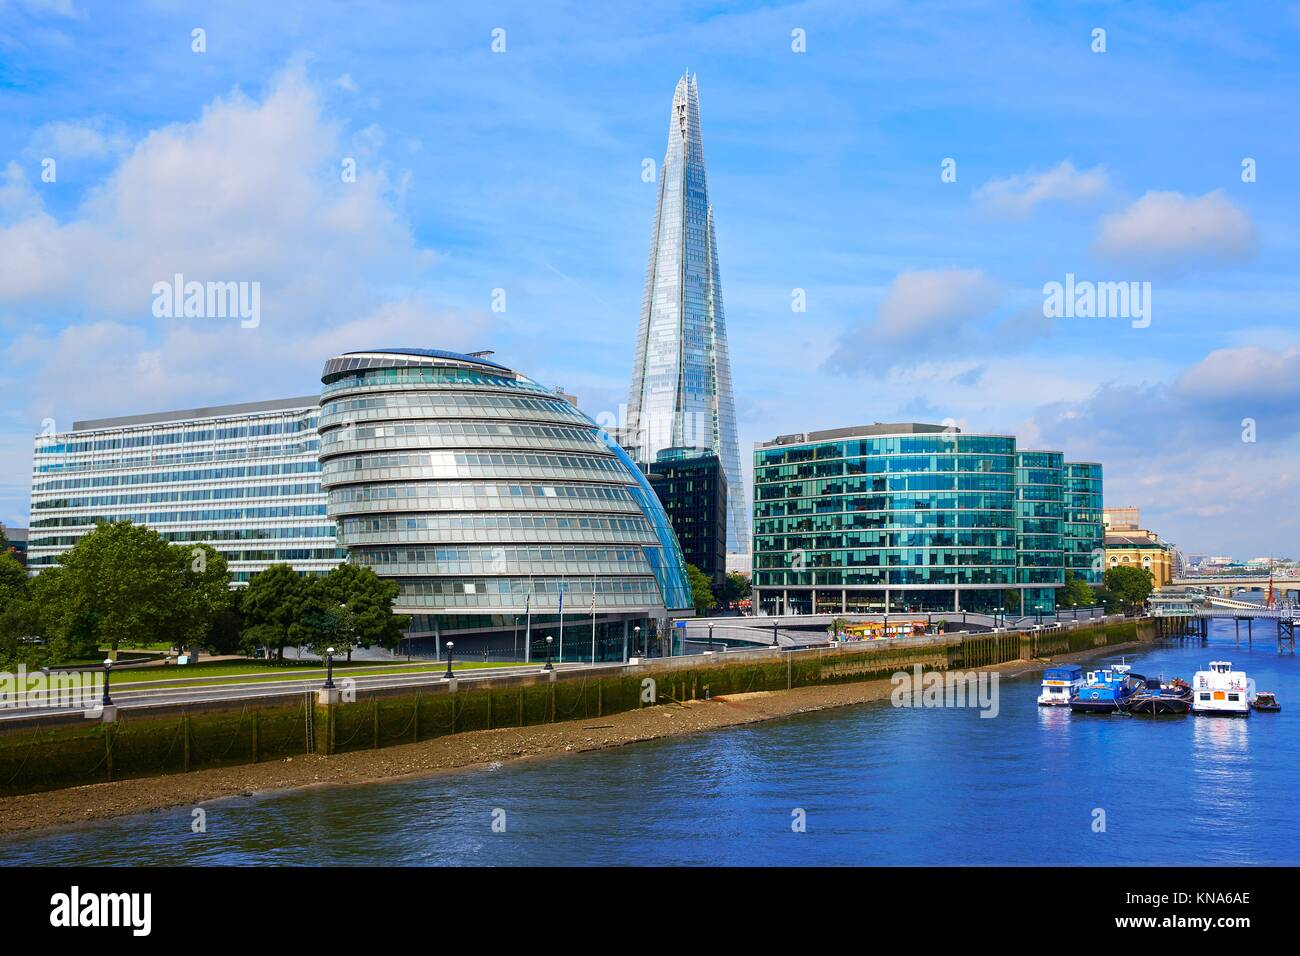 London skyline City Hall and Shard on Thames river. - Stock Image